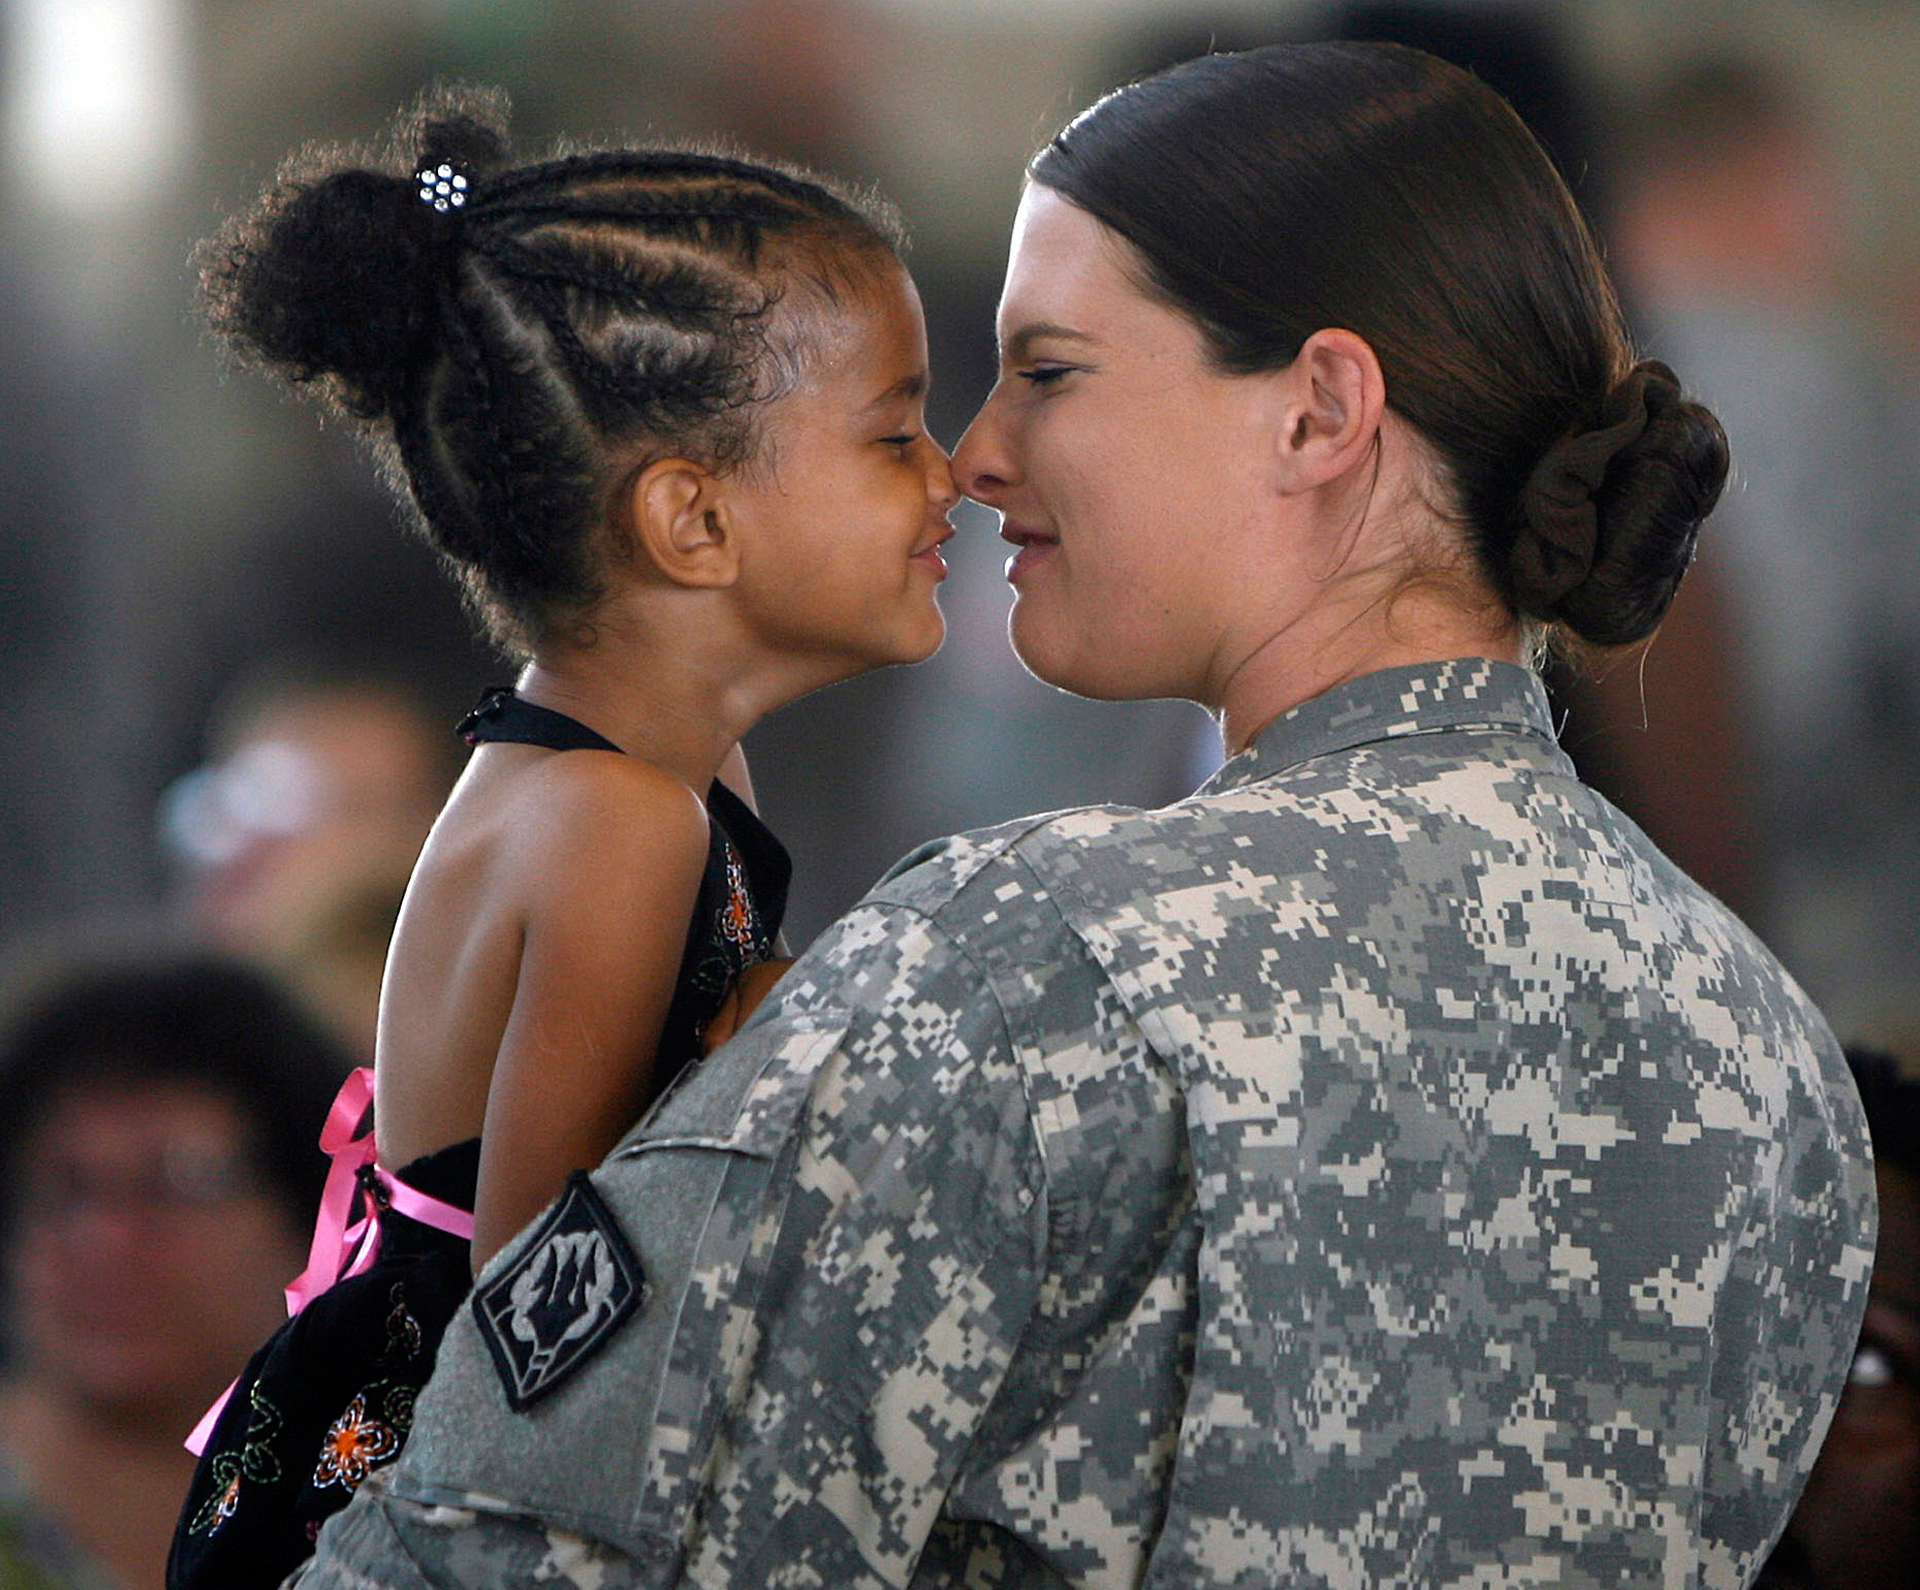 Mother and daughter say goodbye as mother is deployed overseas.